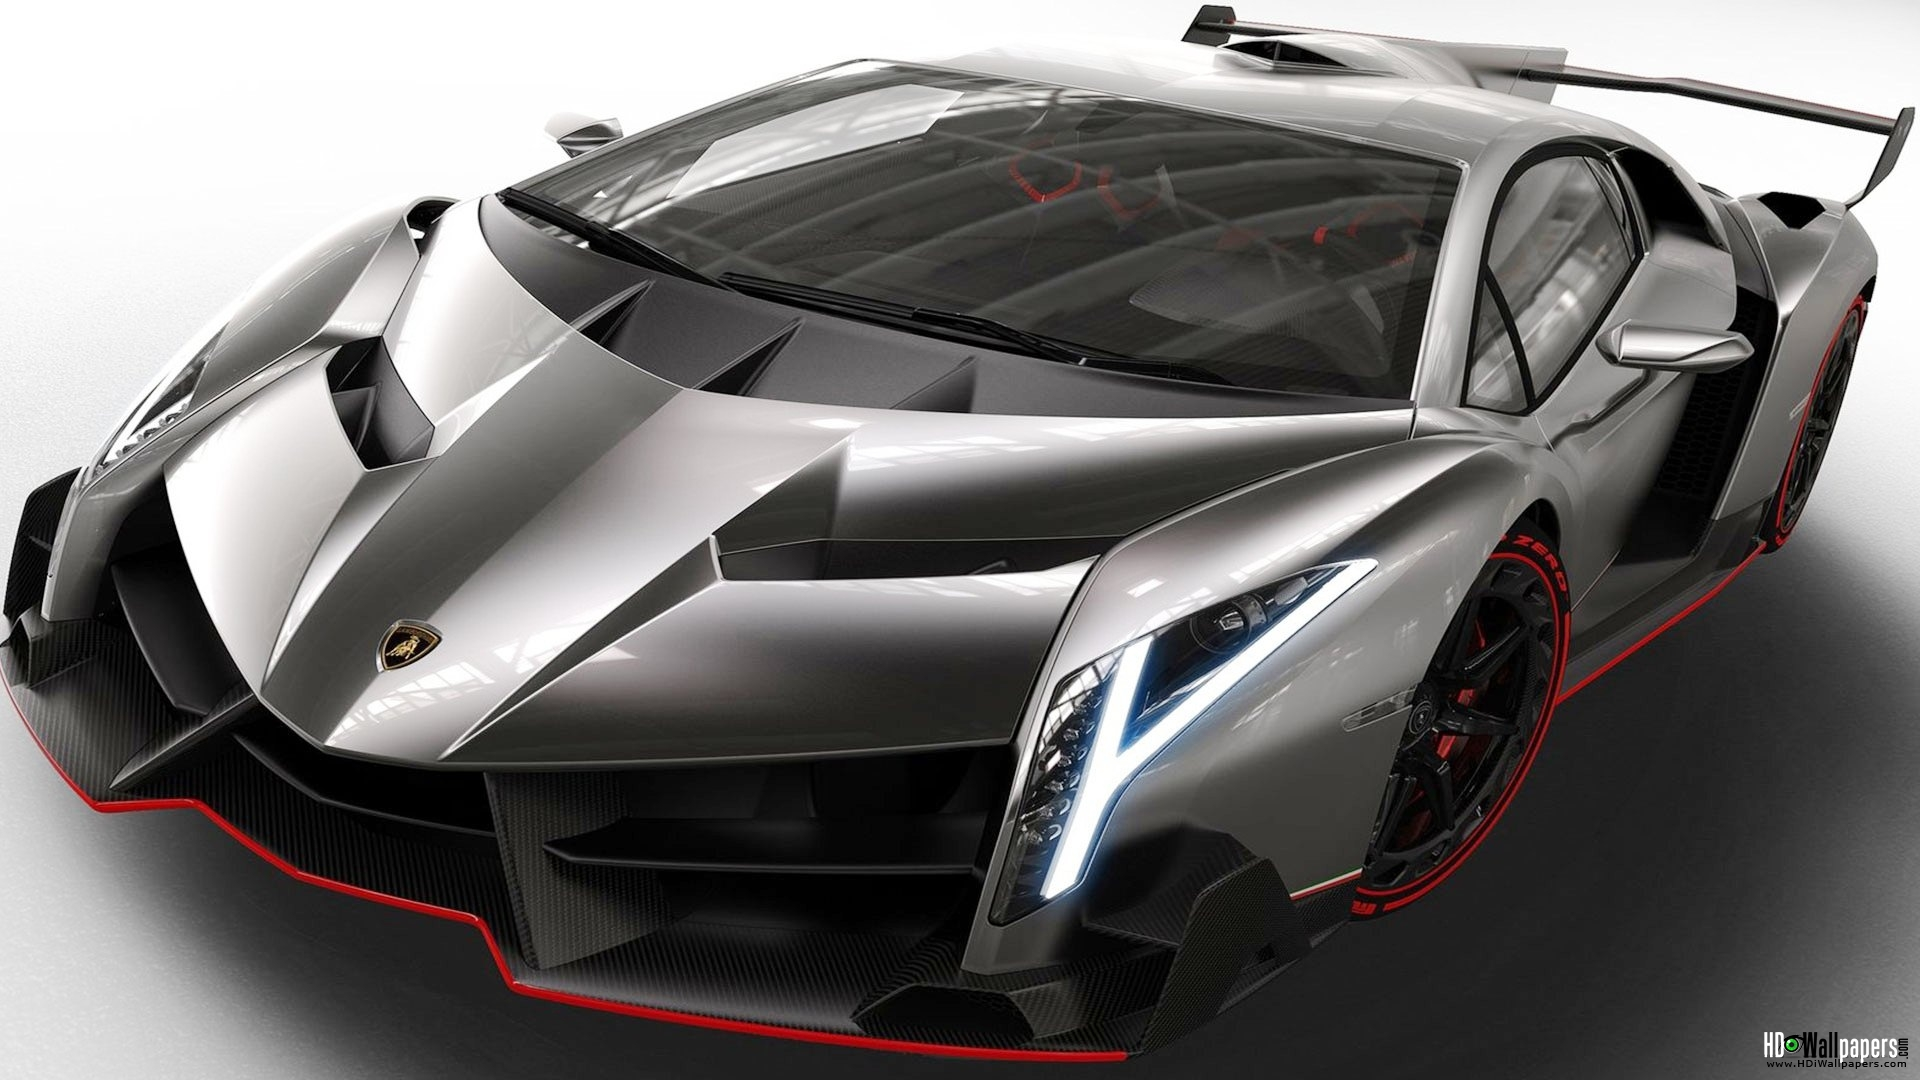 Top 10 Fastest Cars in the World 2014 2015 List 05 1920x1080